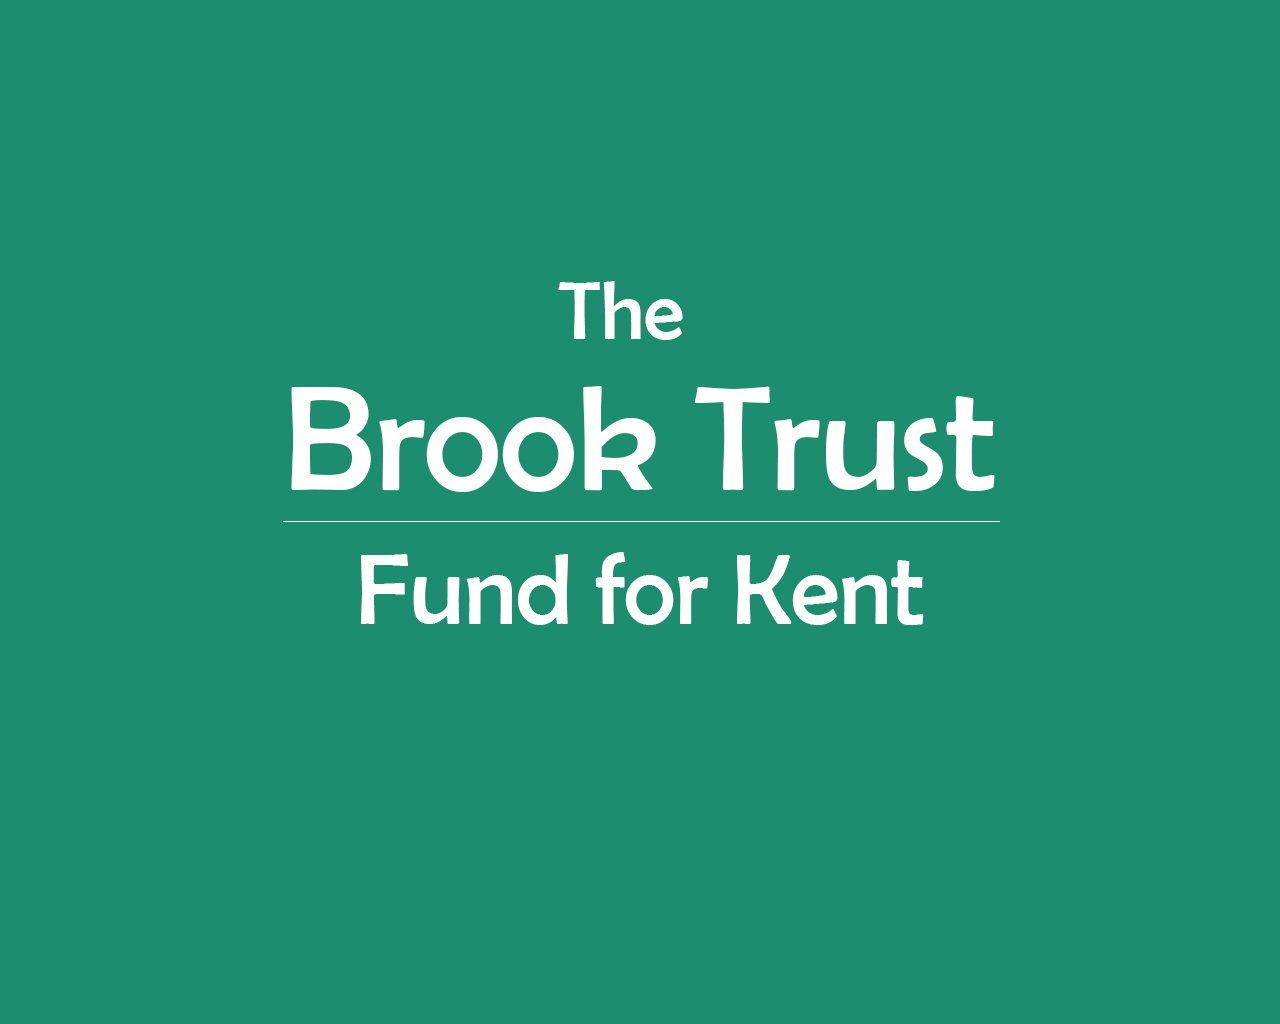 TO USE-The Brook Trust for Kentv4b.jpg